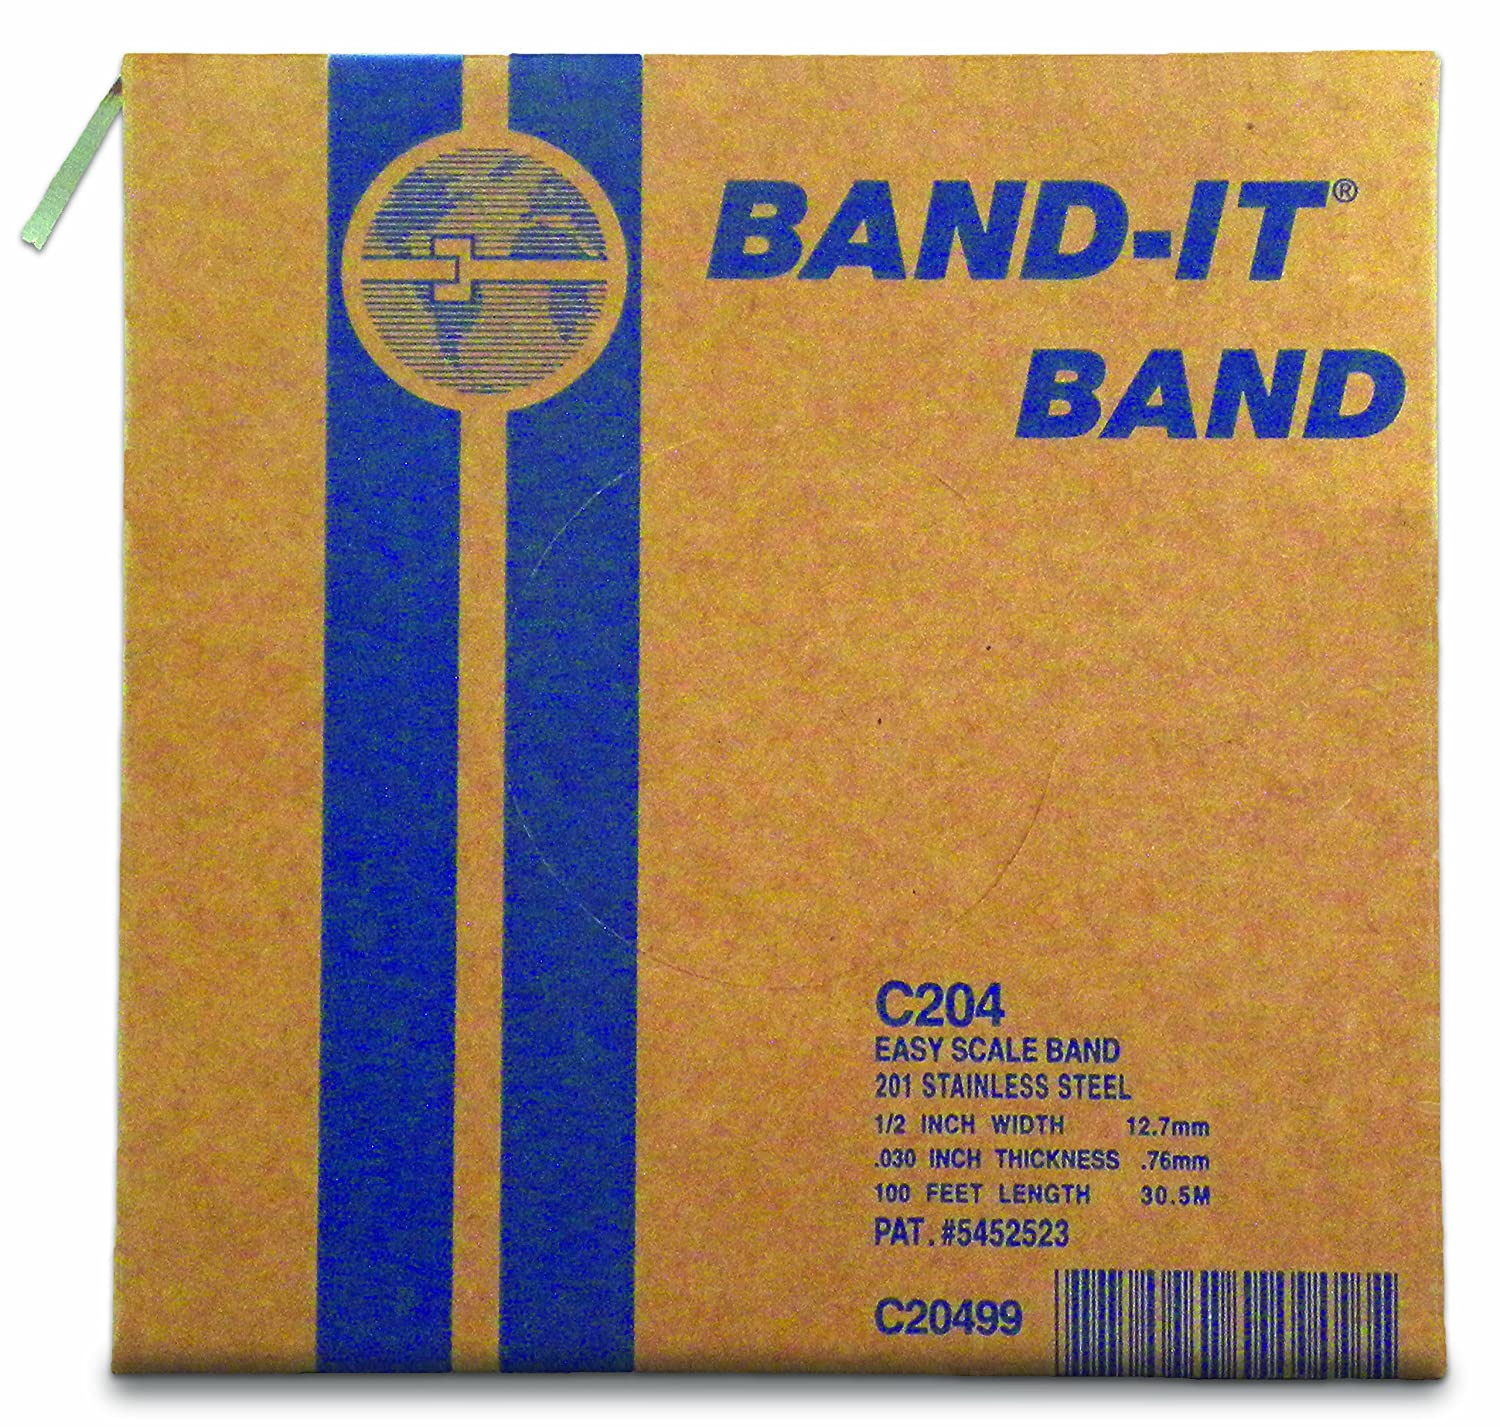 """BAND-IT C20499 201 Stainless Steel Bright Annealed Finish Band, 1/2"""" Width X 0.030"""" Thick, 100 Feet Roll"""